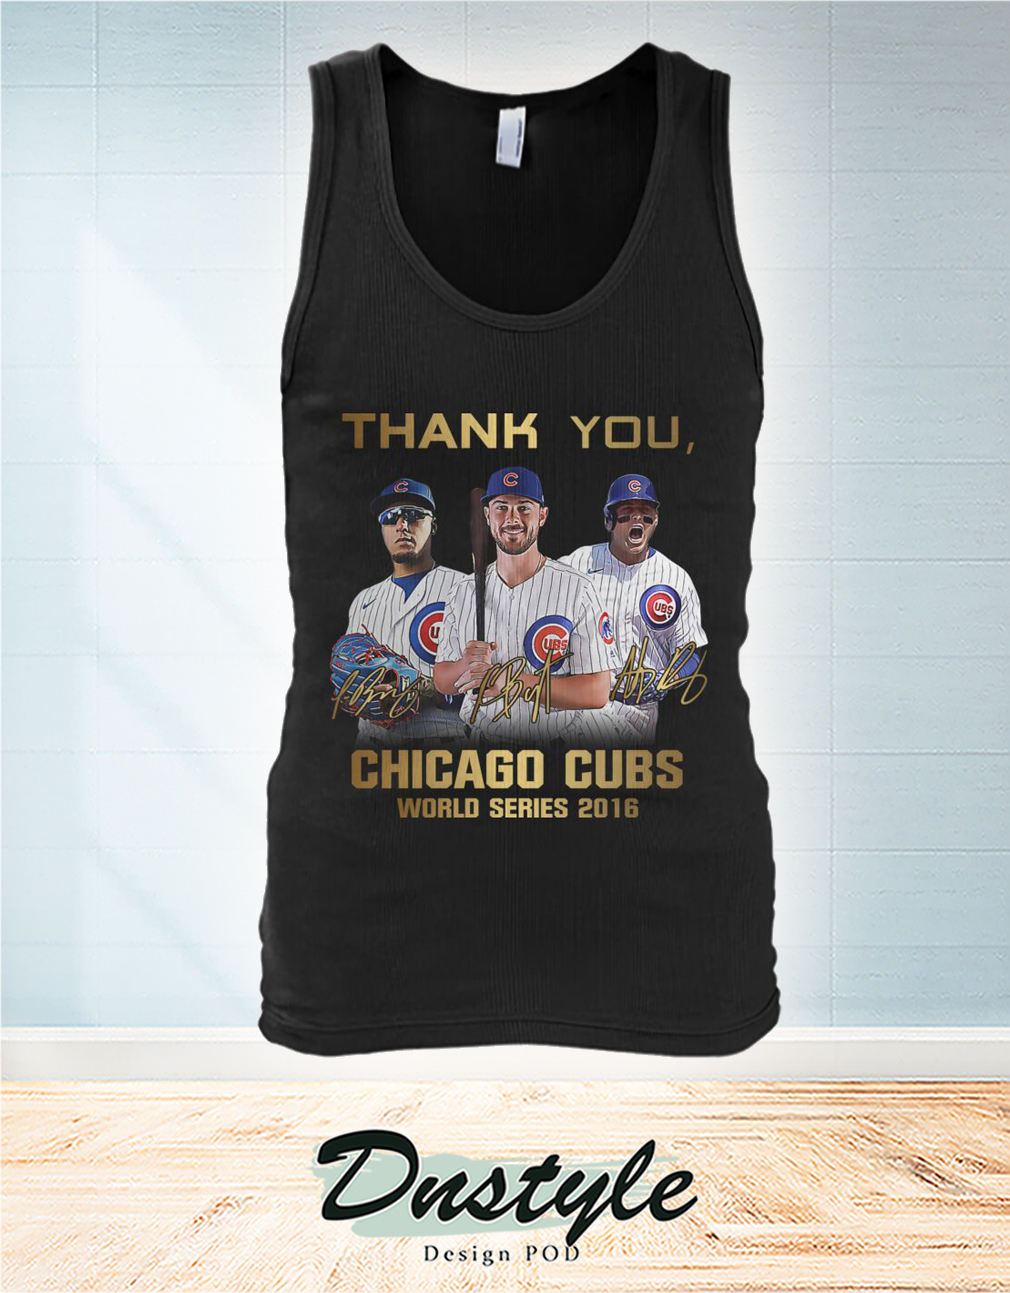 Thank you Chicago cubs world series 2016 tank